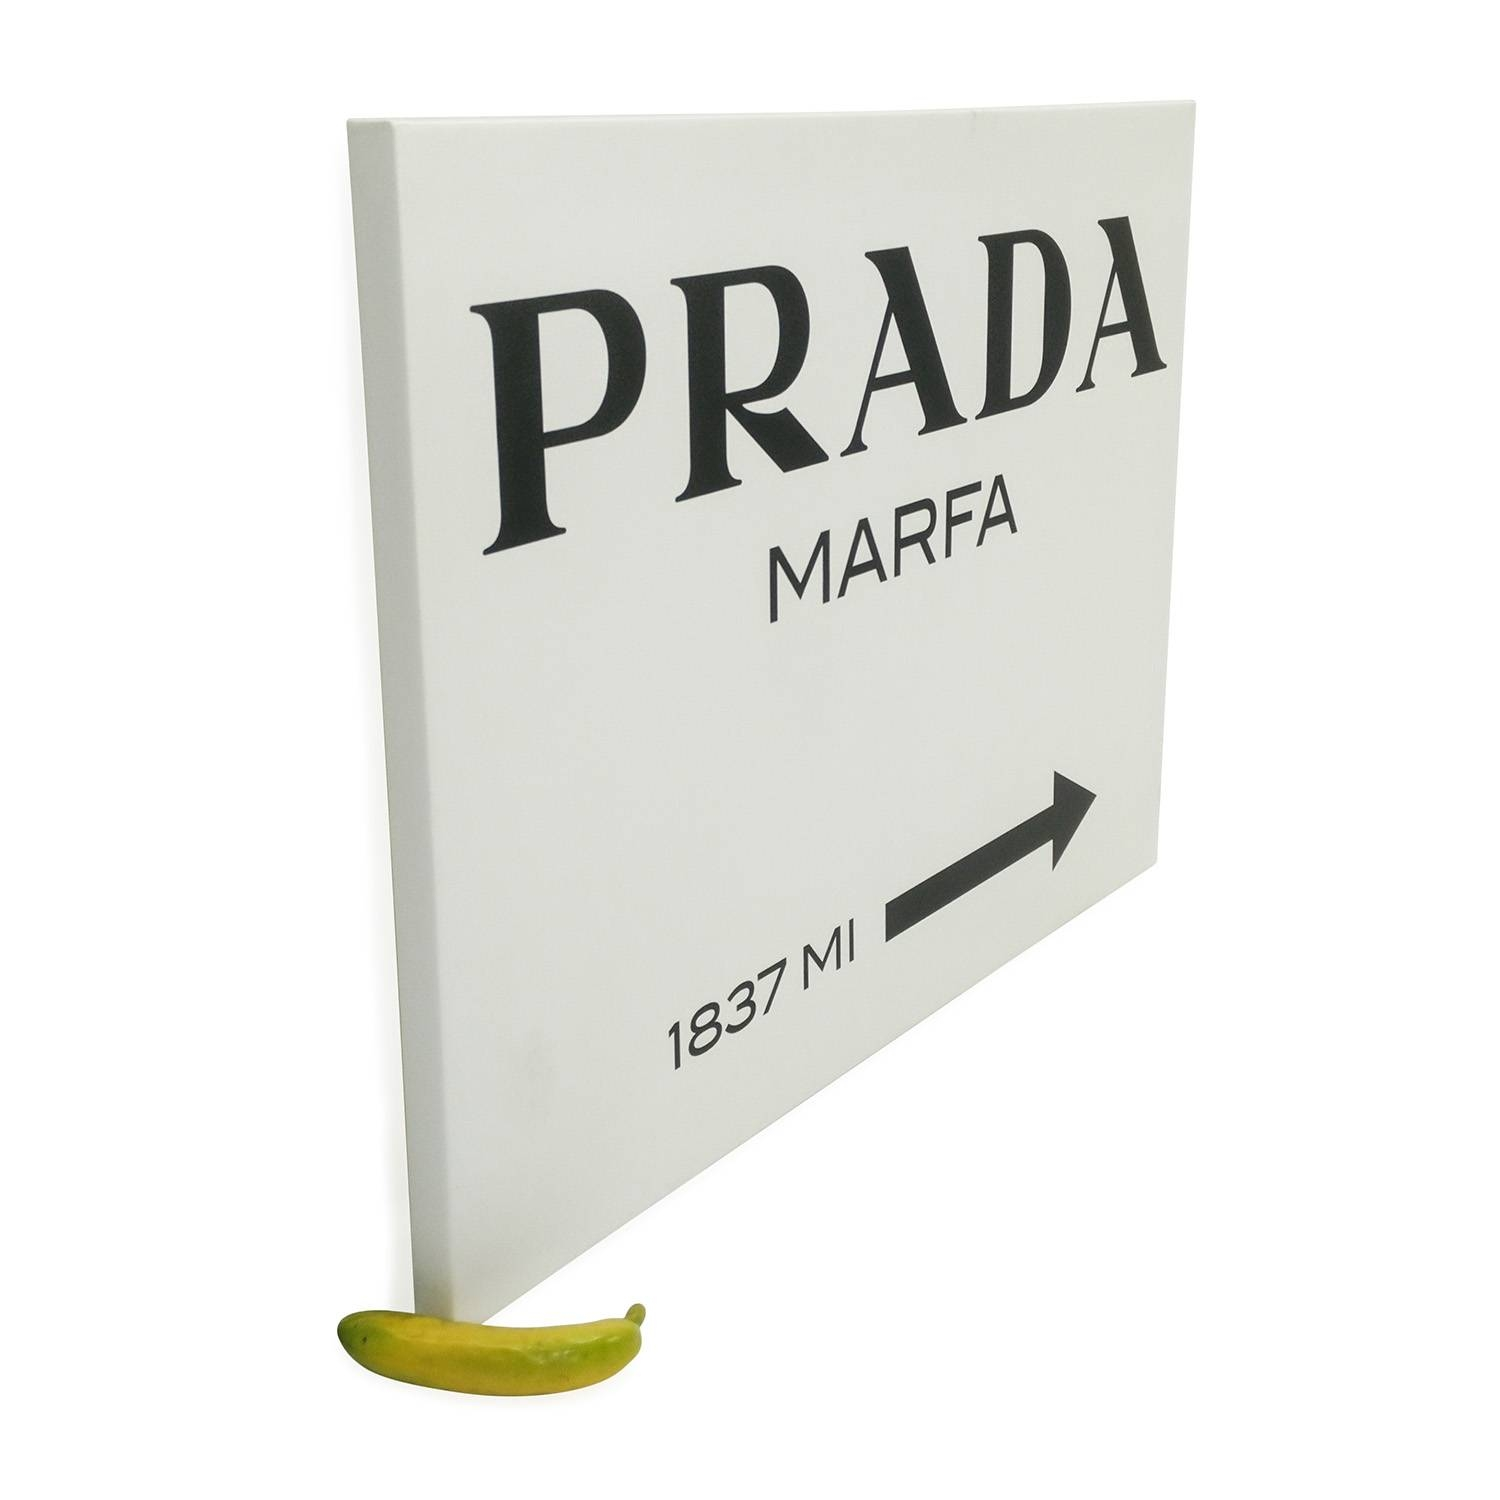 90% Off – Prada Marfa Canvas From Gossip Girl / Decor Intended For Most Recent Prada Wall Art (View 1 of 25)